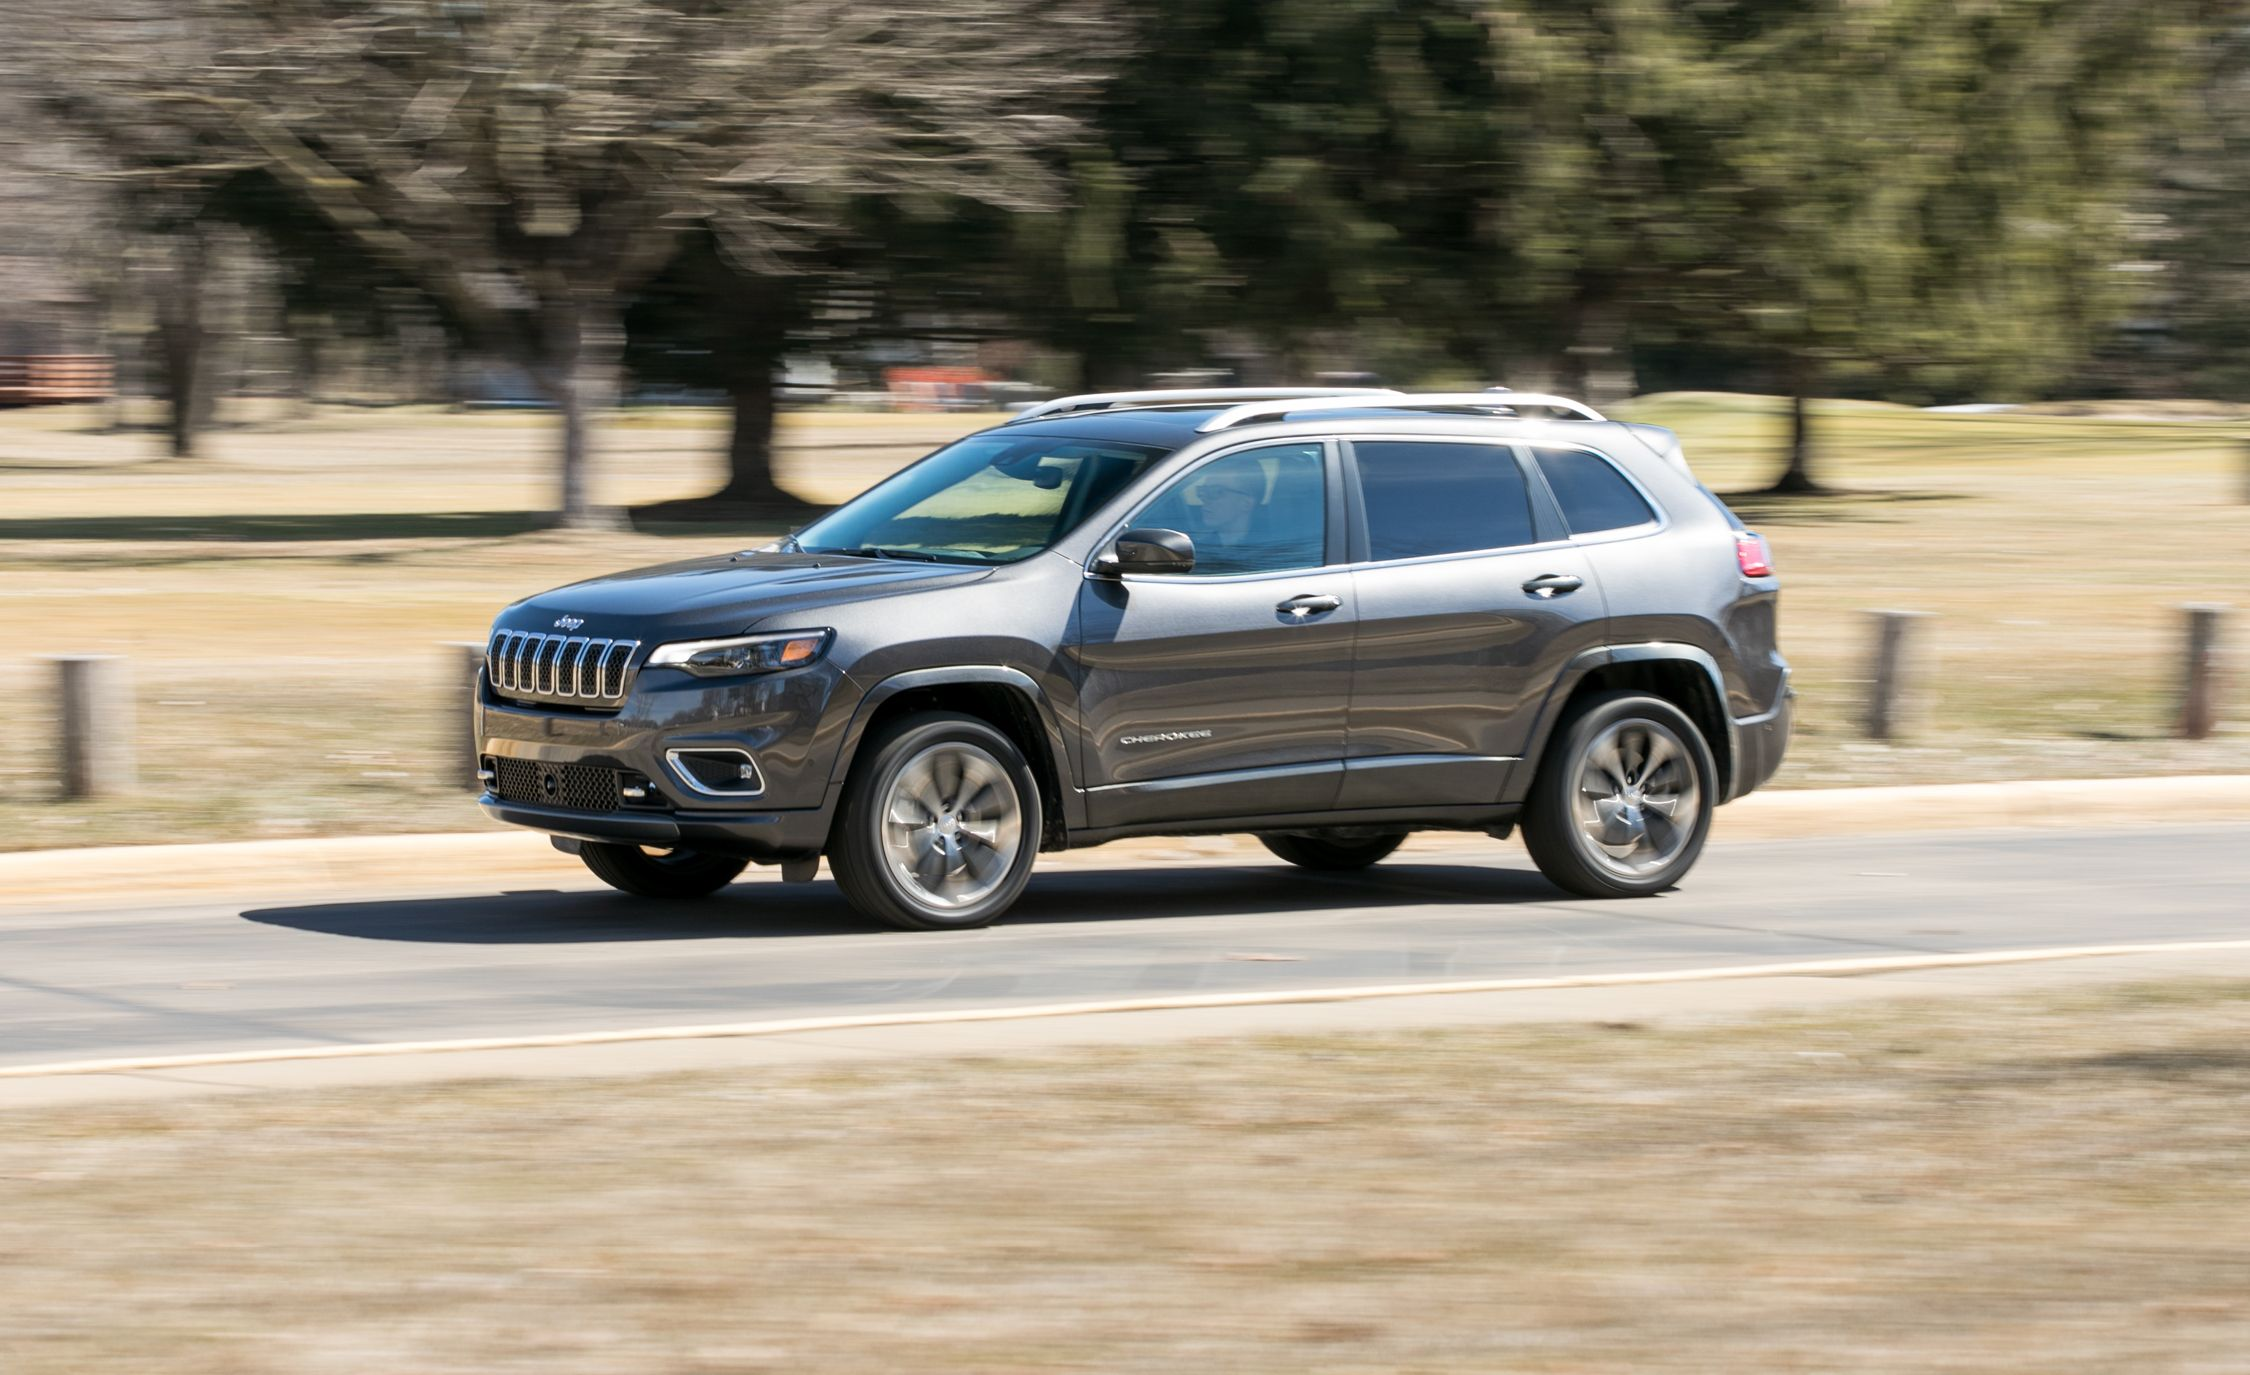 2019 jeep cherokee v 6 awd test it s just okay review car and rh caranddriver com